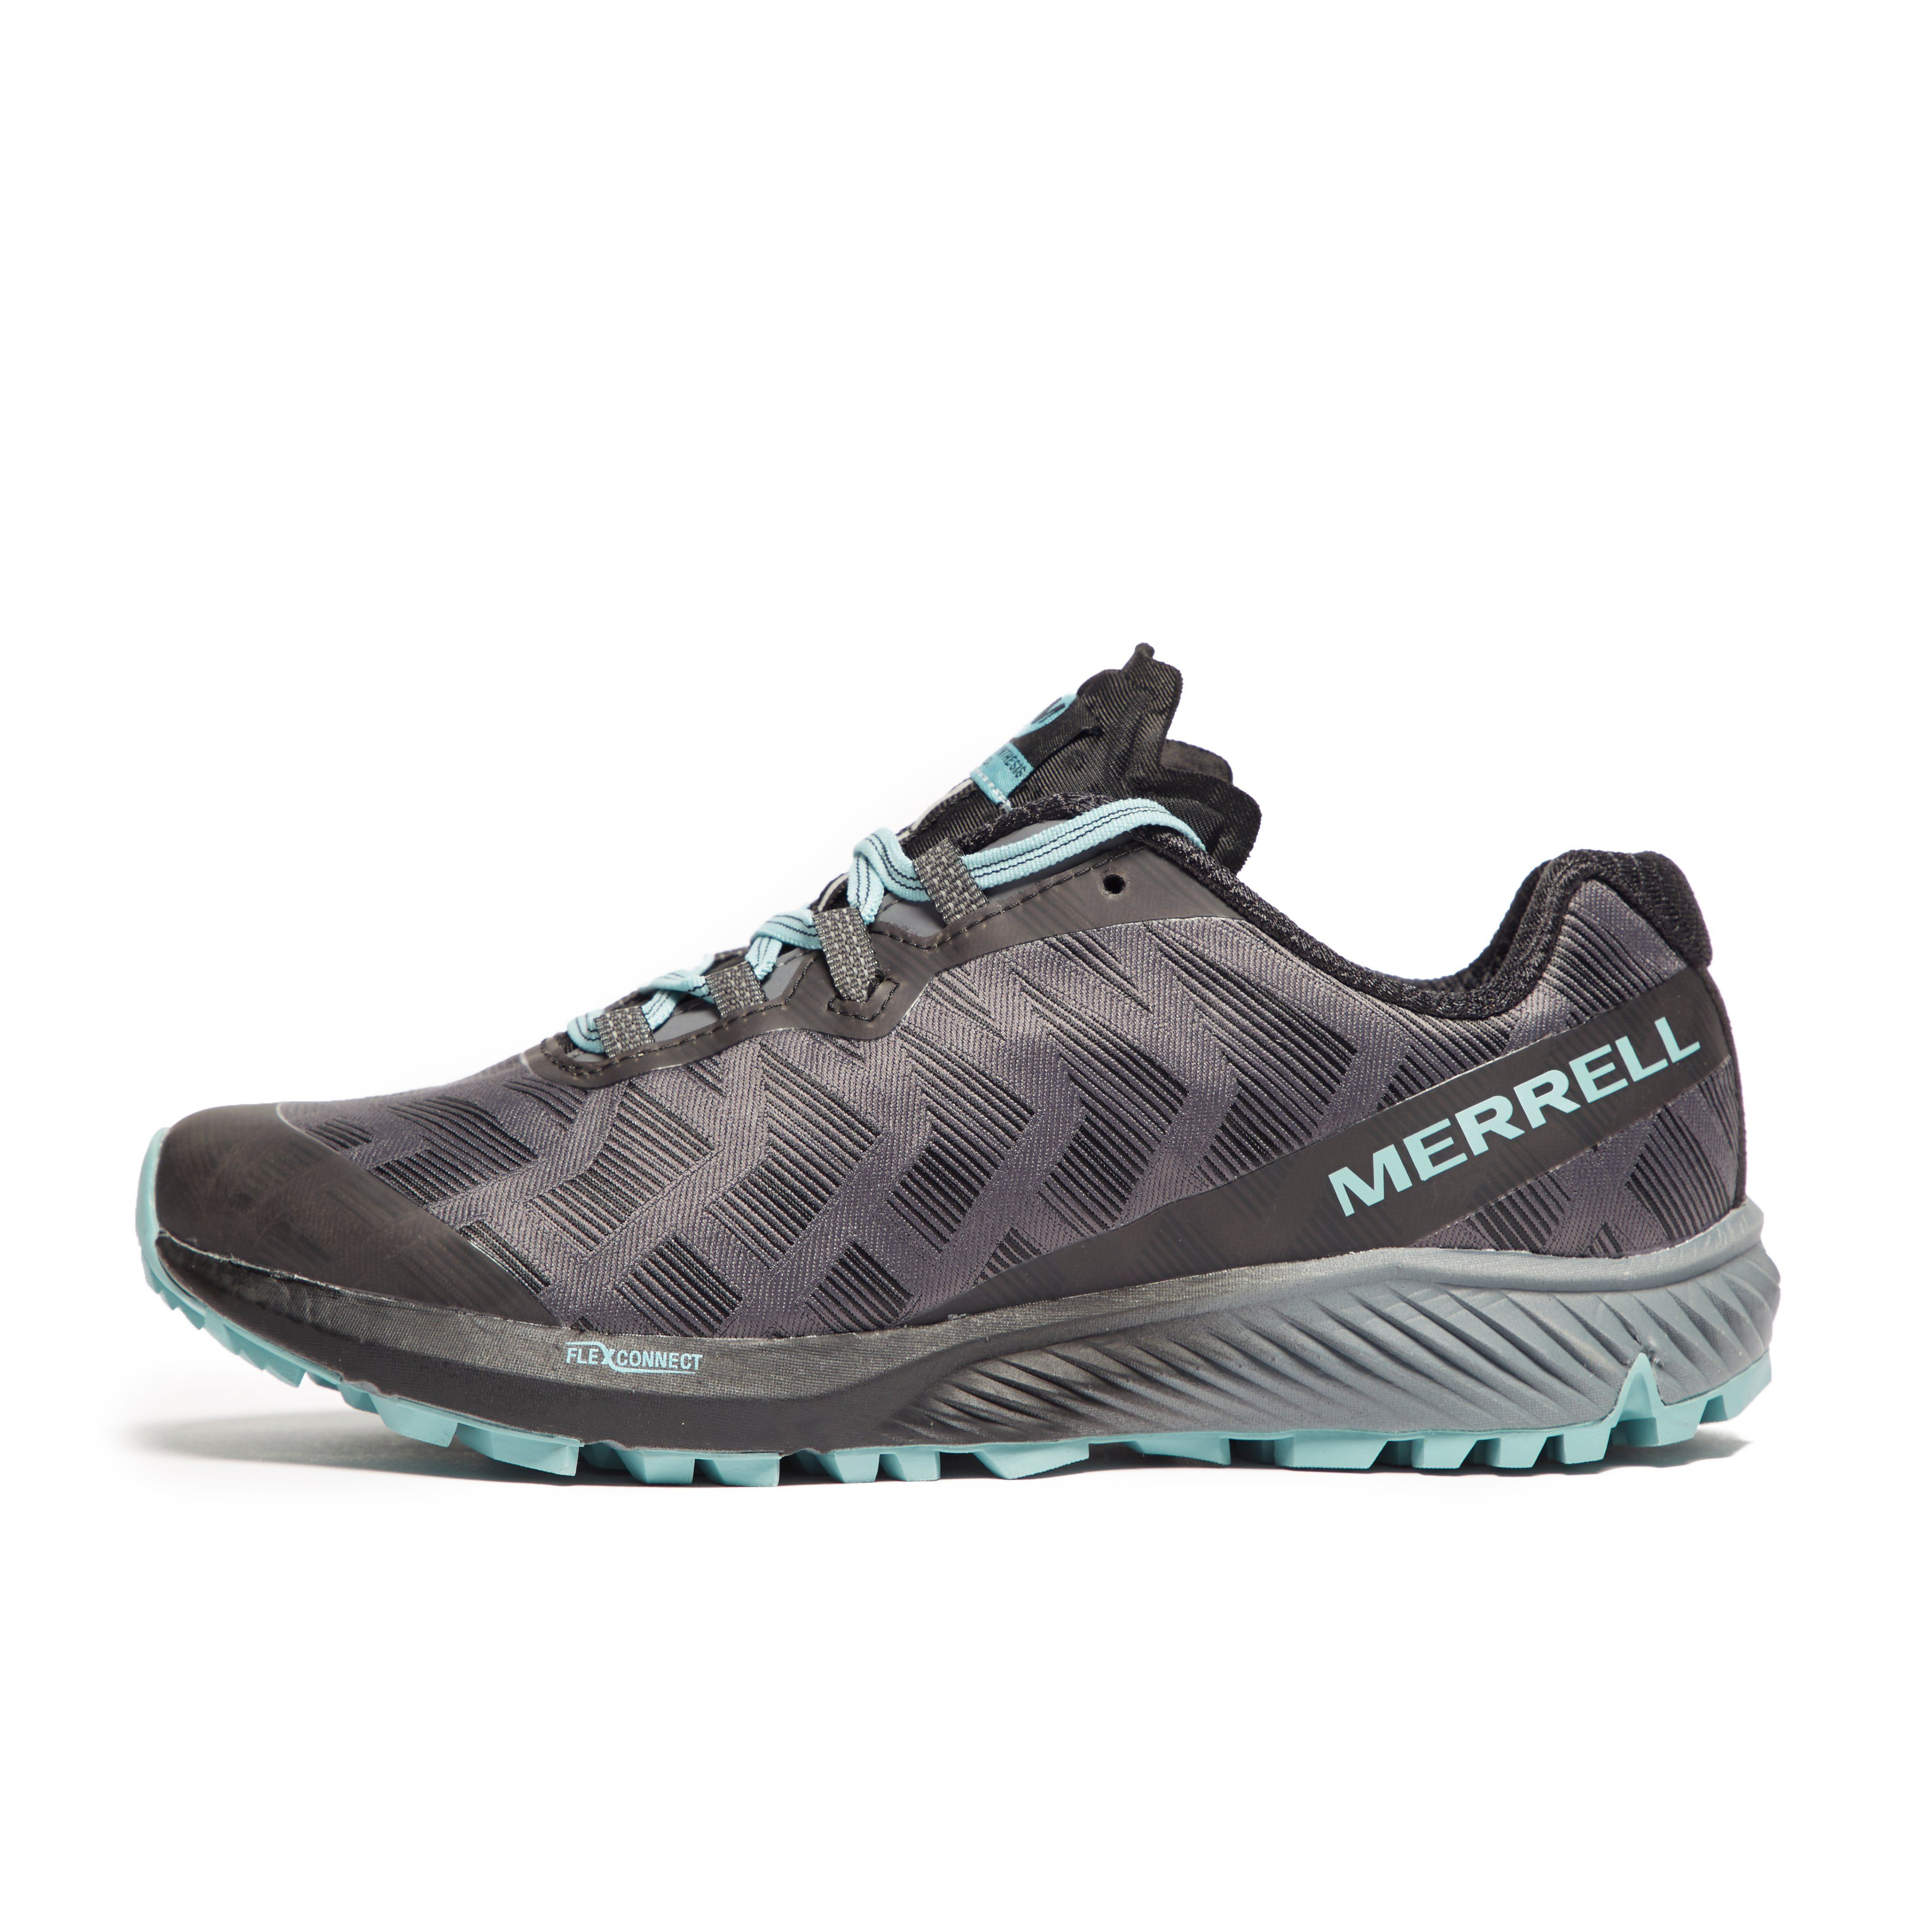 Merrell Agility Synthesis Flex Women's Trail Running Shoes